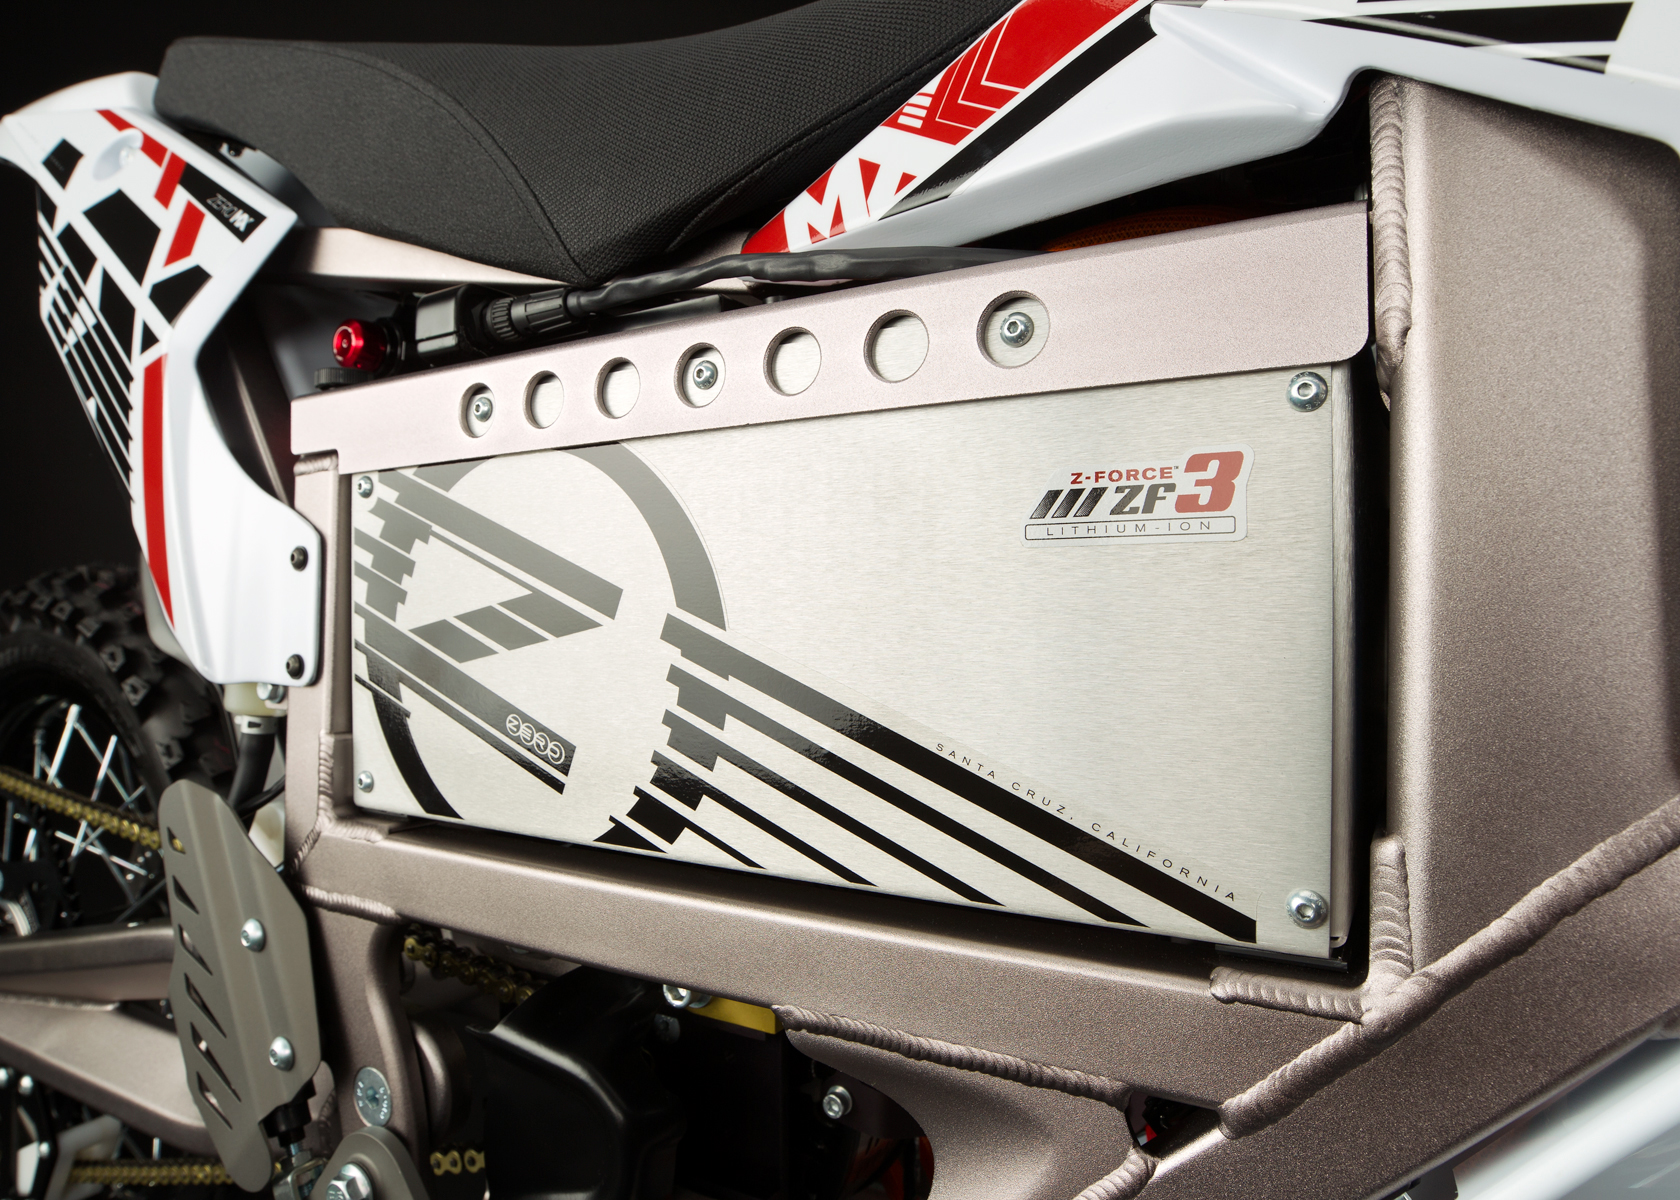 '.2012 Zero MX Electric Motorcycle: Battery.'